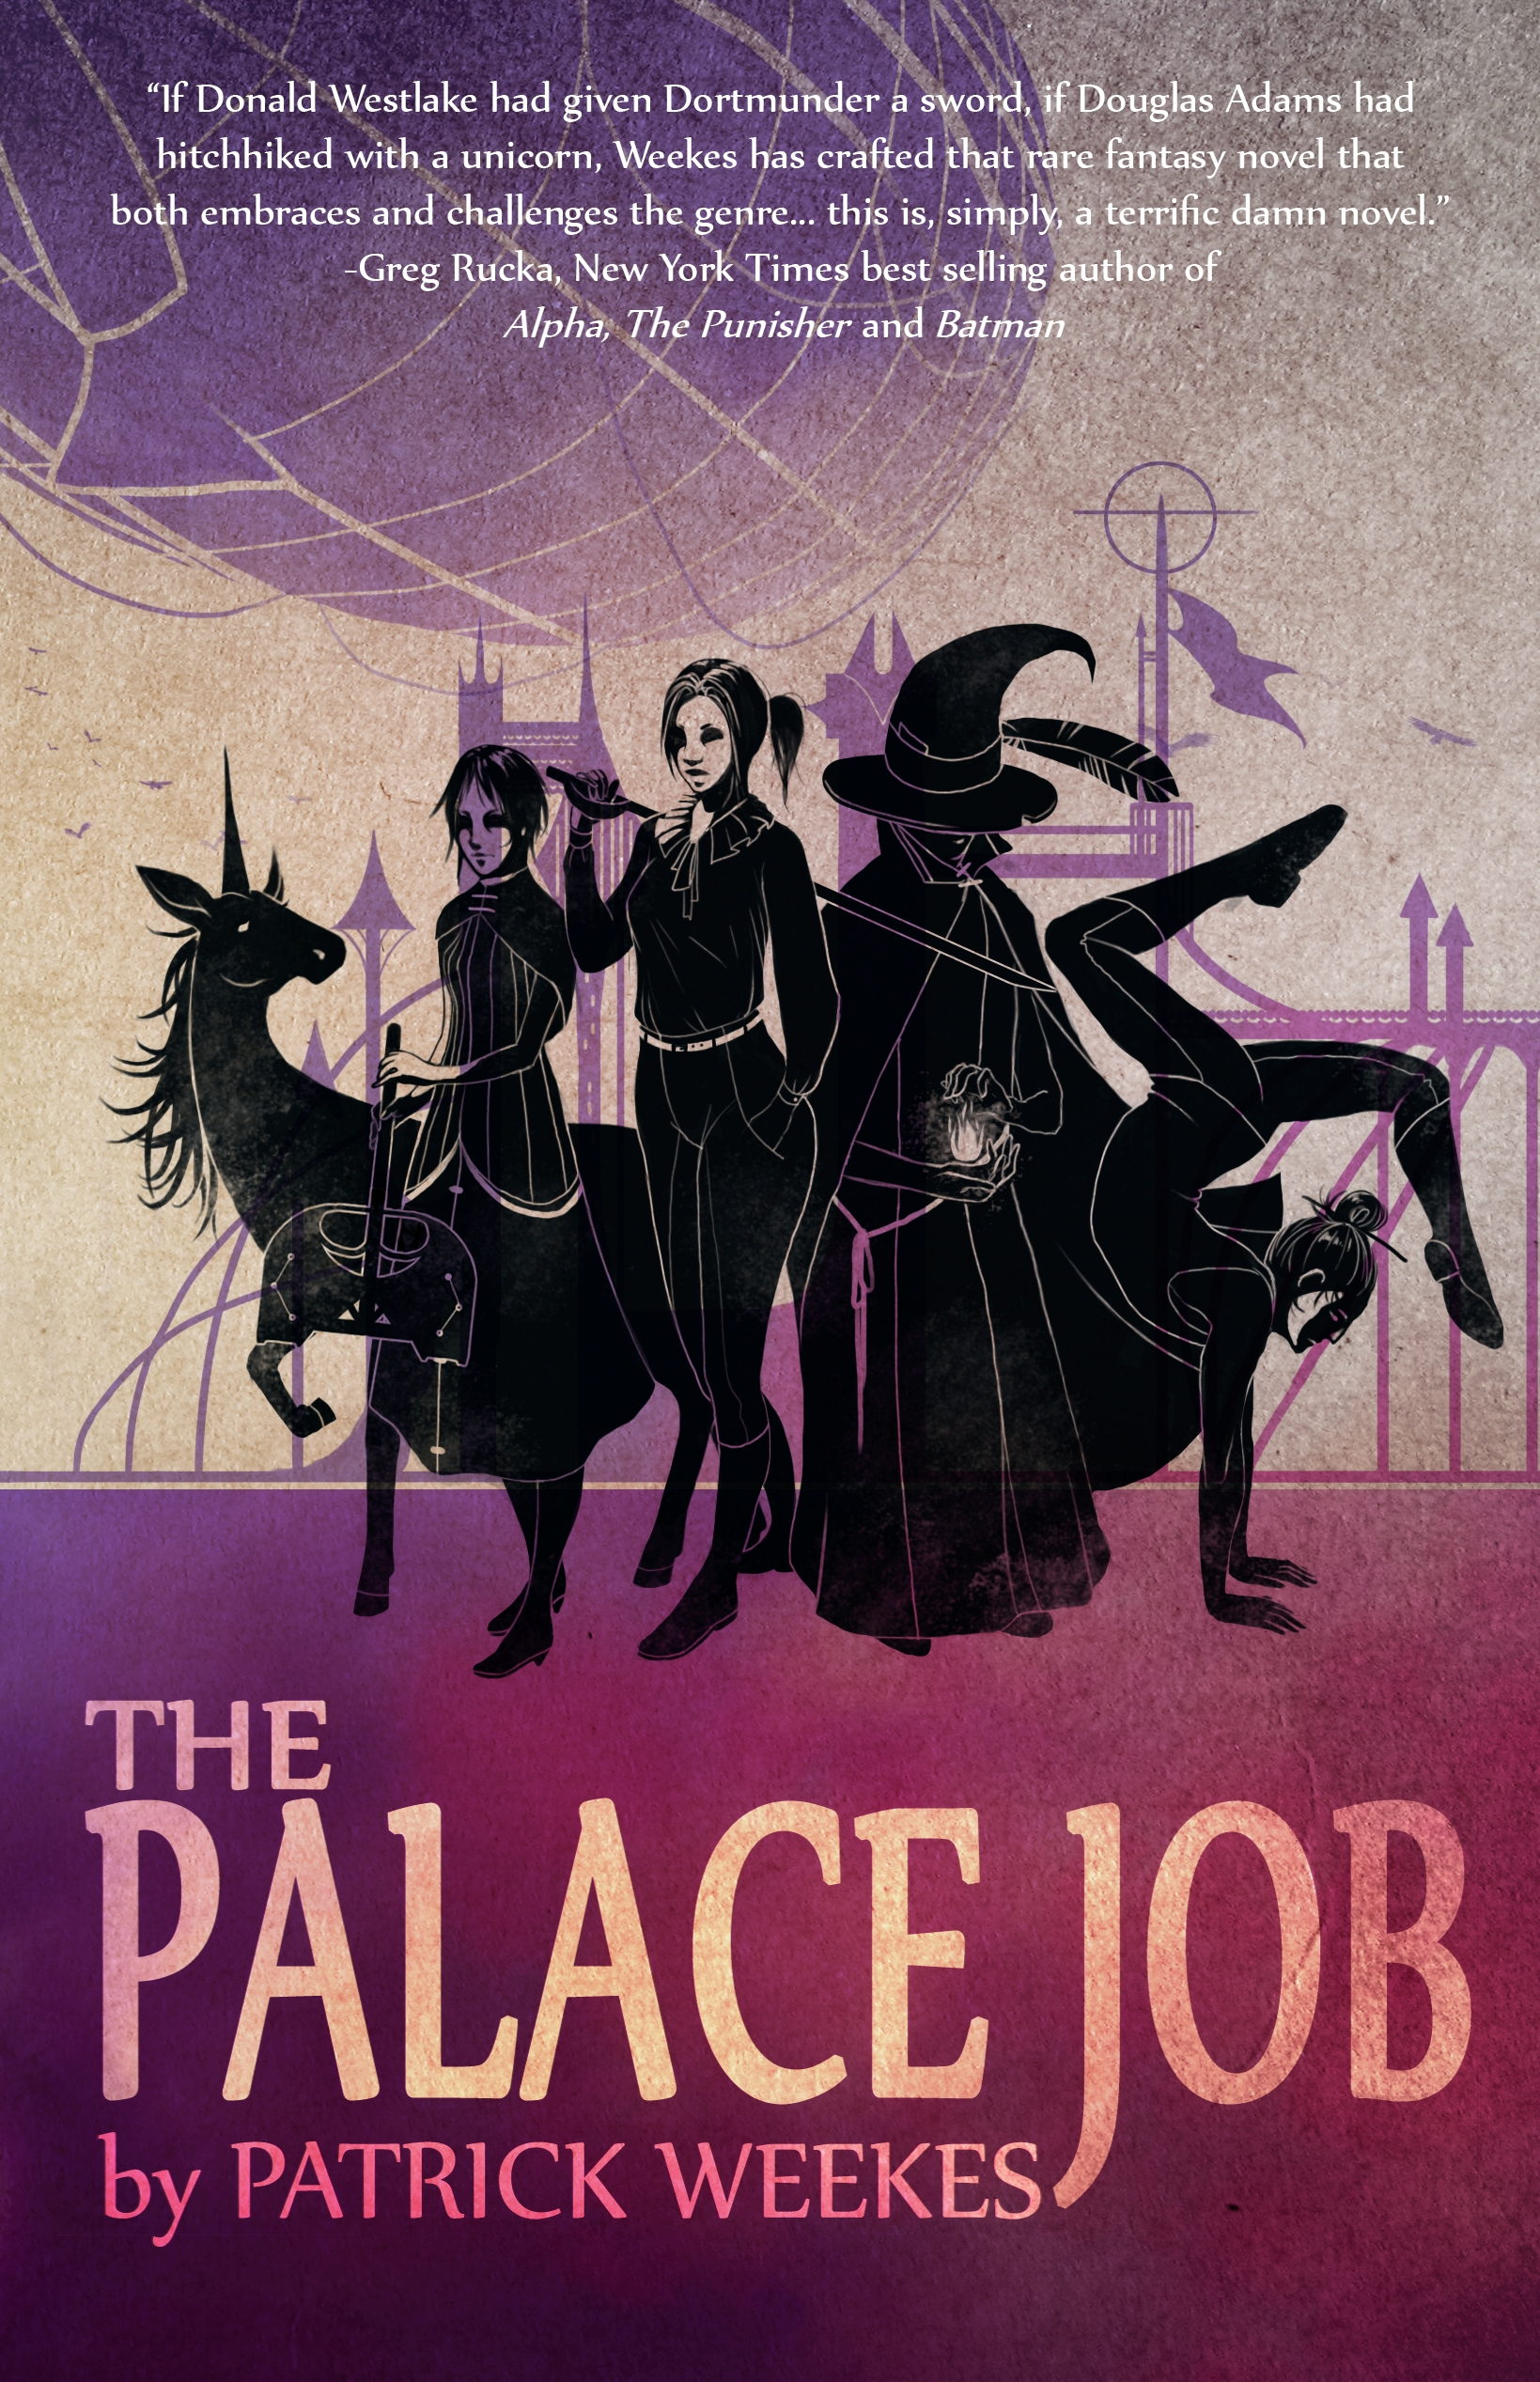 The Palace Job: The Nerd Appropriate Review & A CONTEST!